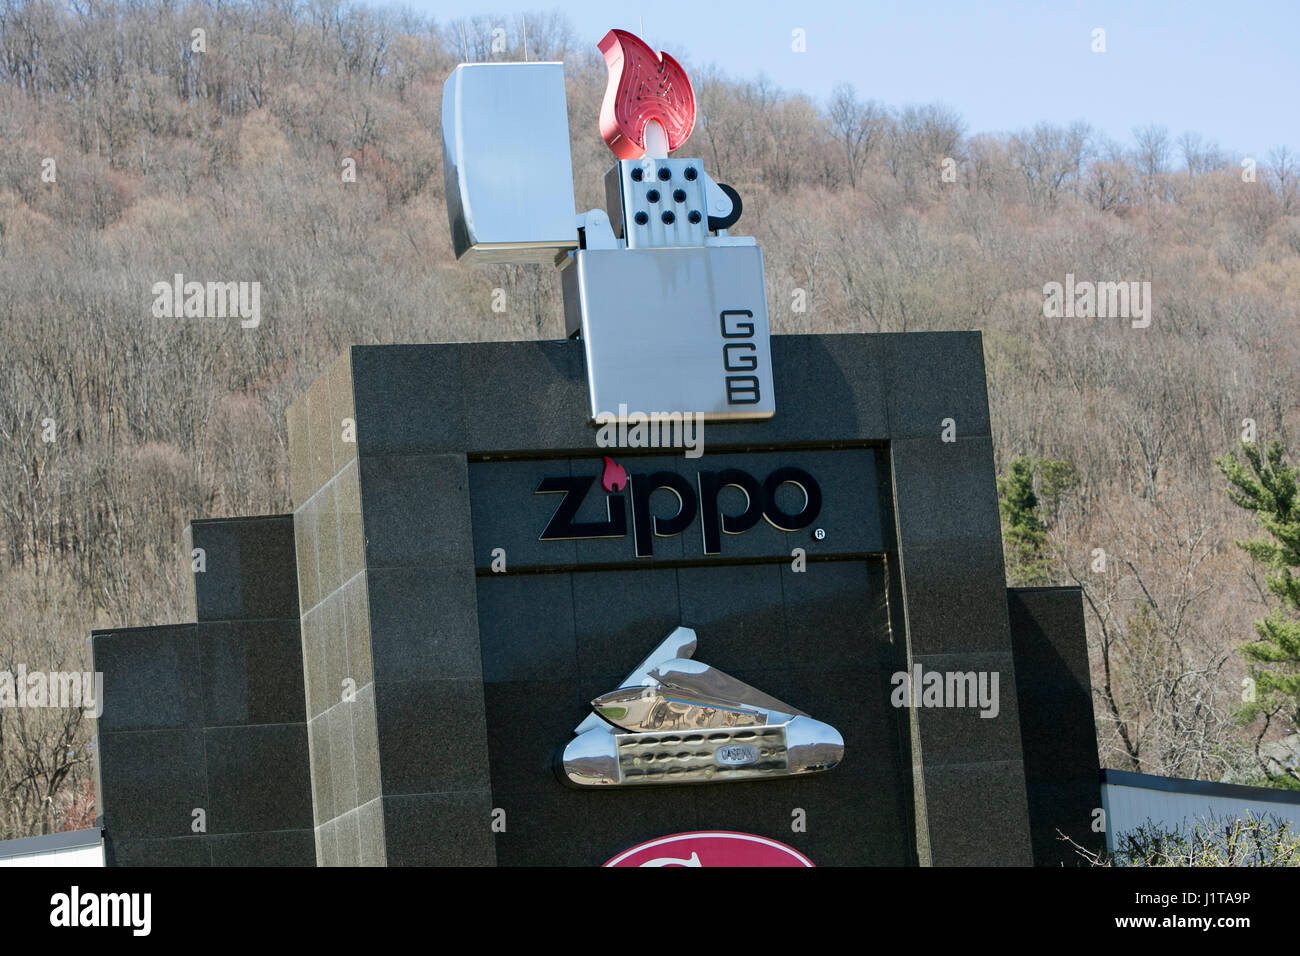 A logo sign outside of the Zippo/Case visitors center of the Zippo Manufacturing Company, maker of Zippo lighters, - Stock Image